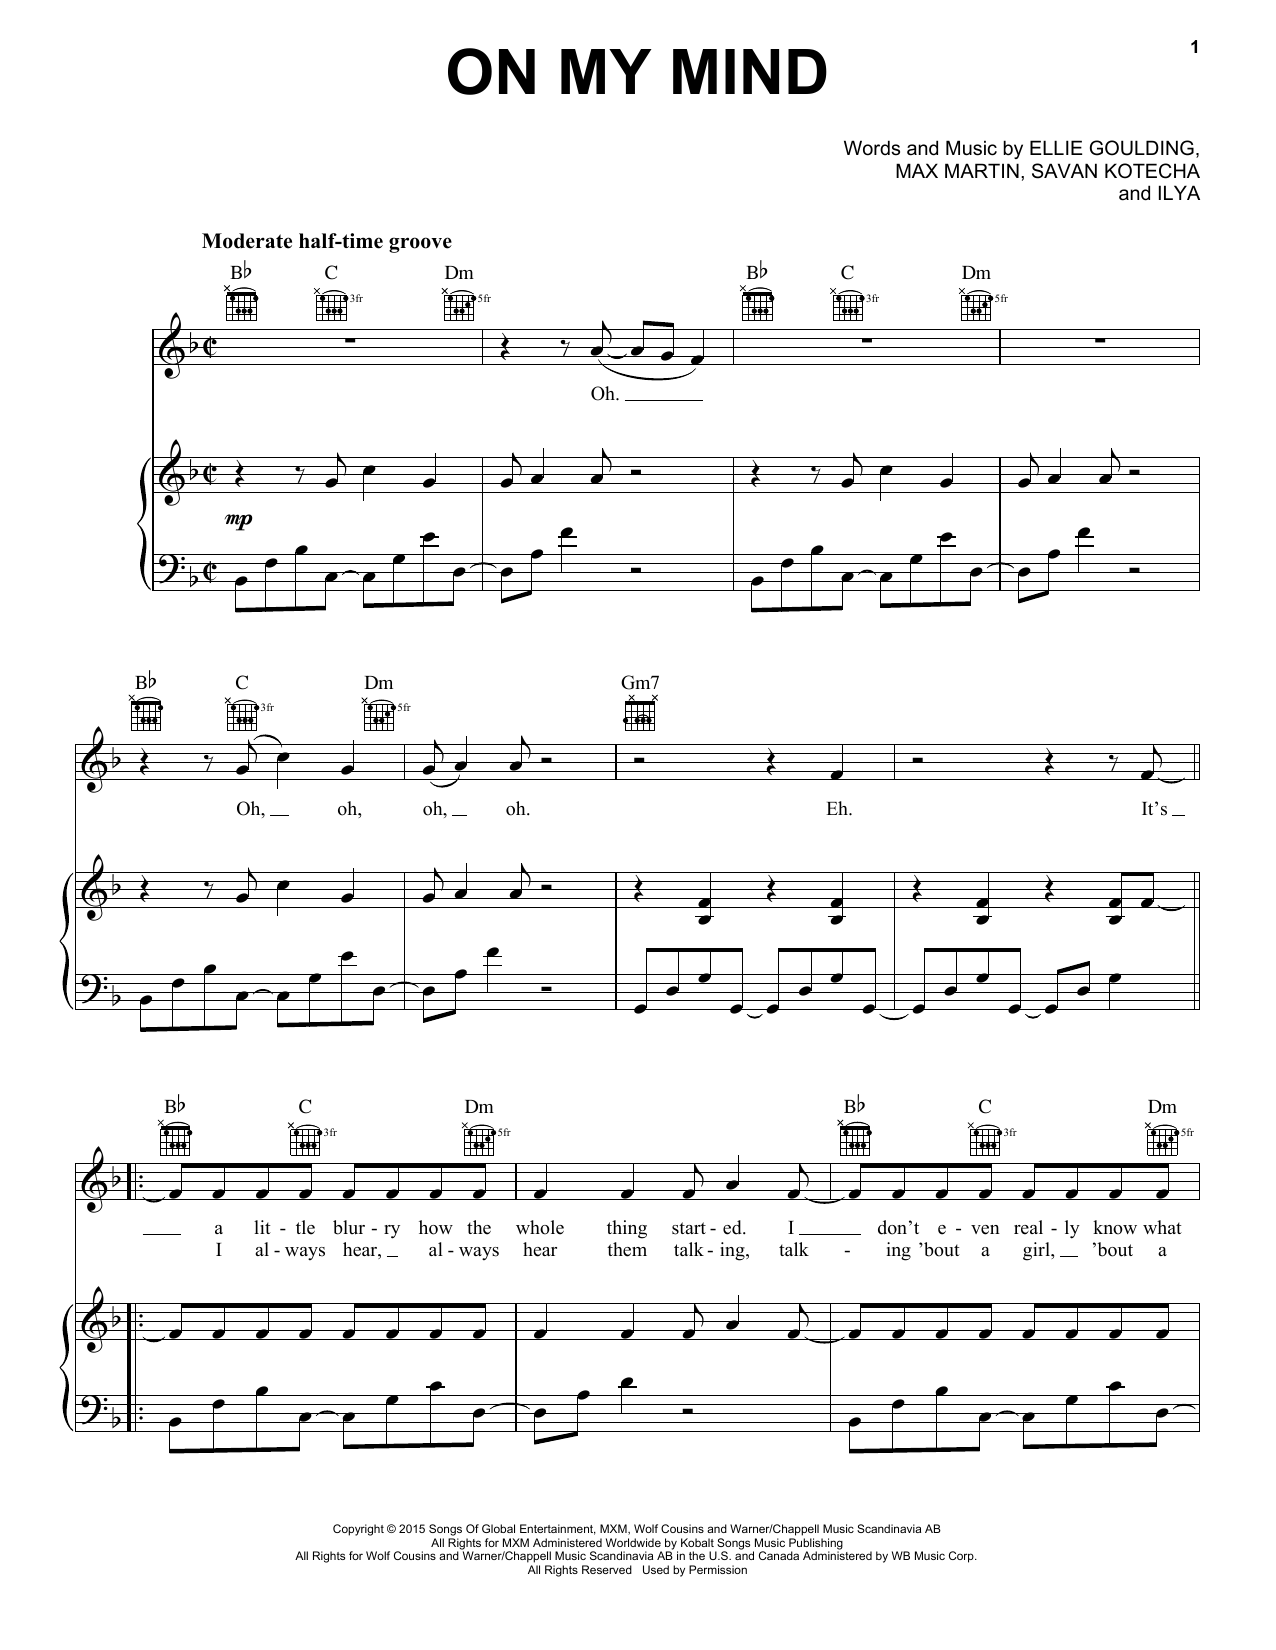 On My Mind Sheet Music